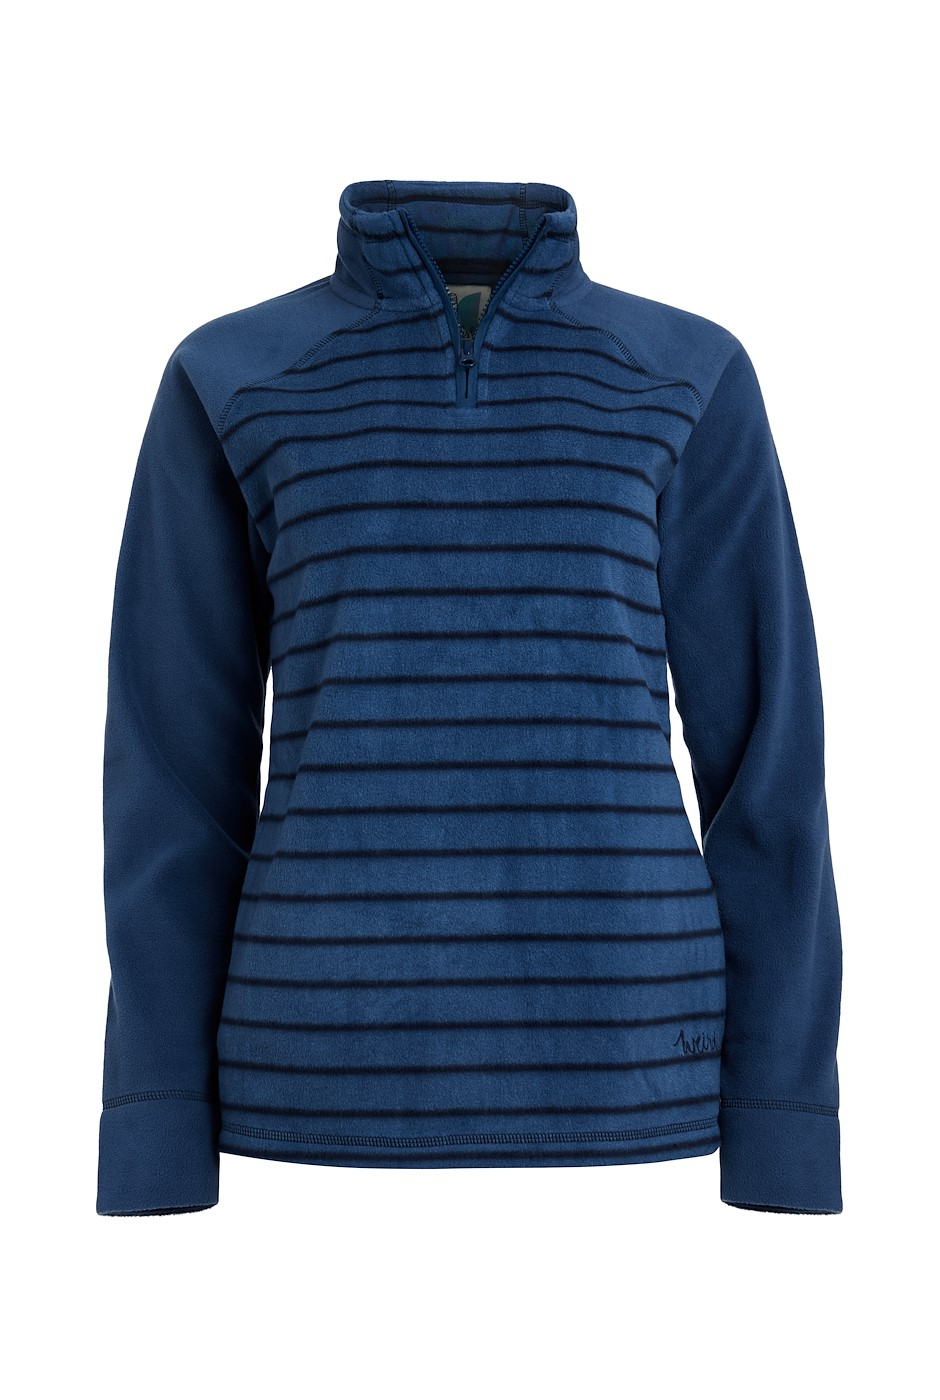 Litchi Recycled Fleece Ensign Blue